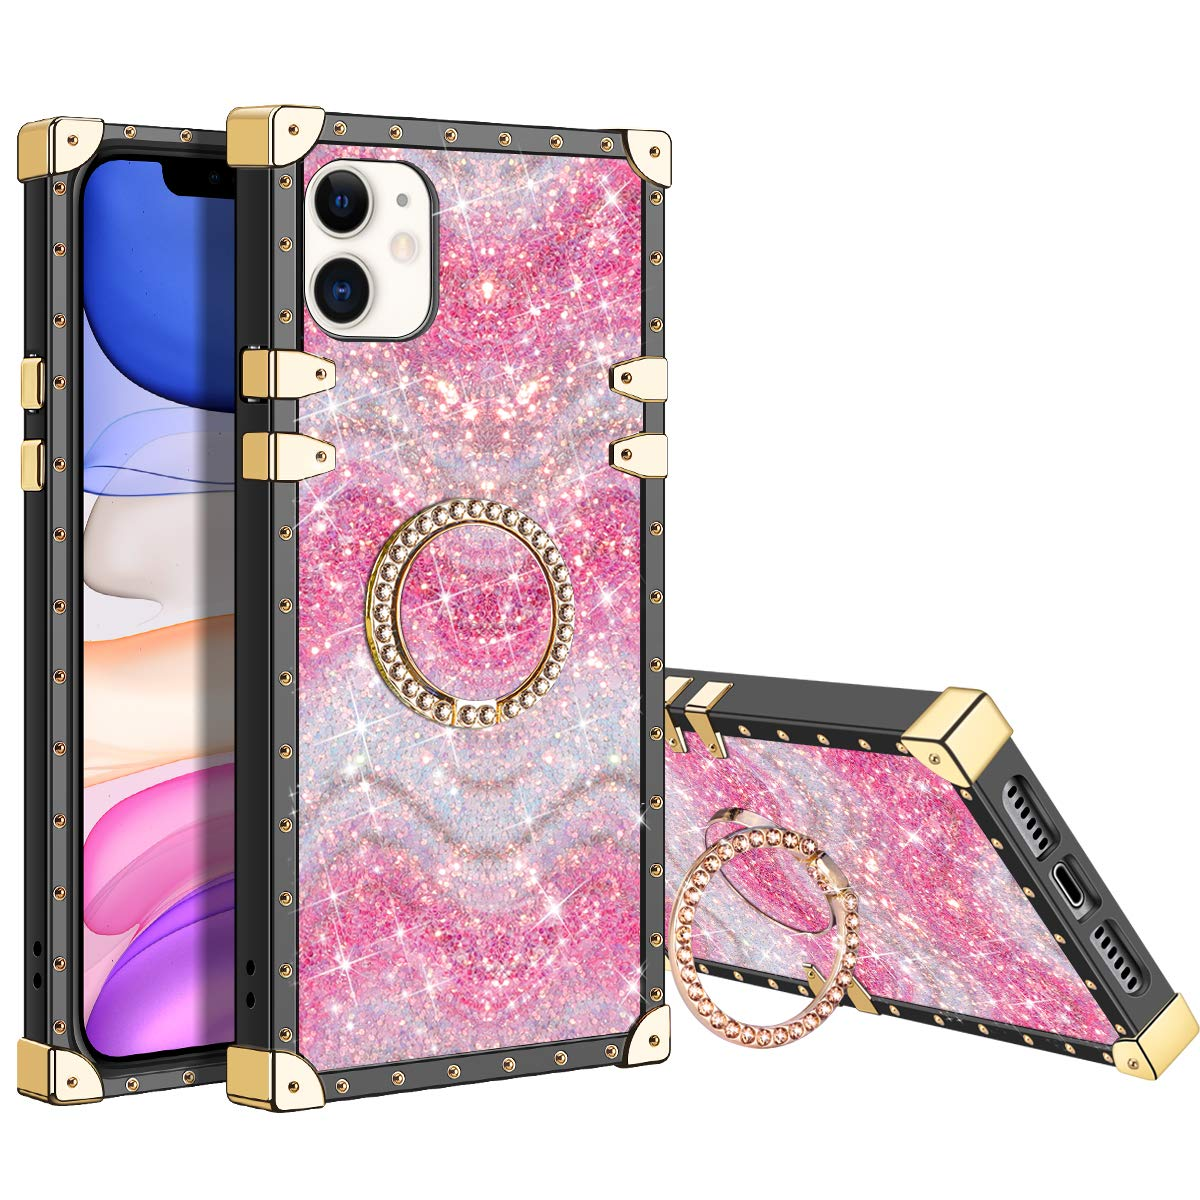 XNMOA for iPhone 11 Glitter Case for Women Girls Kickstand Ring Holder Rainbow Sparkle Bling Square Case Slim Durable Shockproof Bumper Hard Anti-Slip Back Protective for iPhone 11 6.1inch Pink